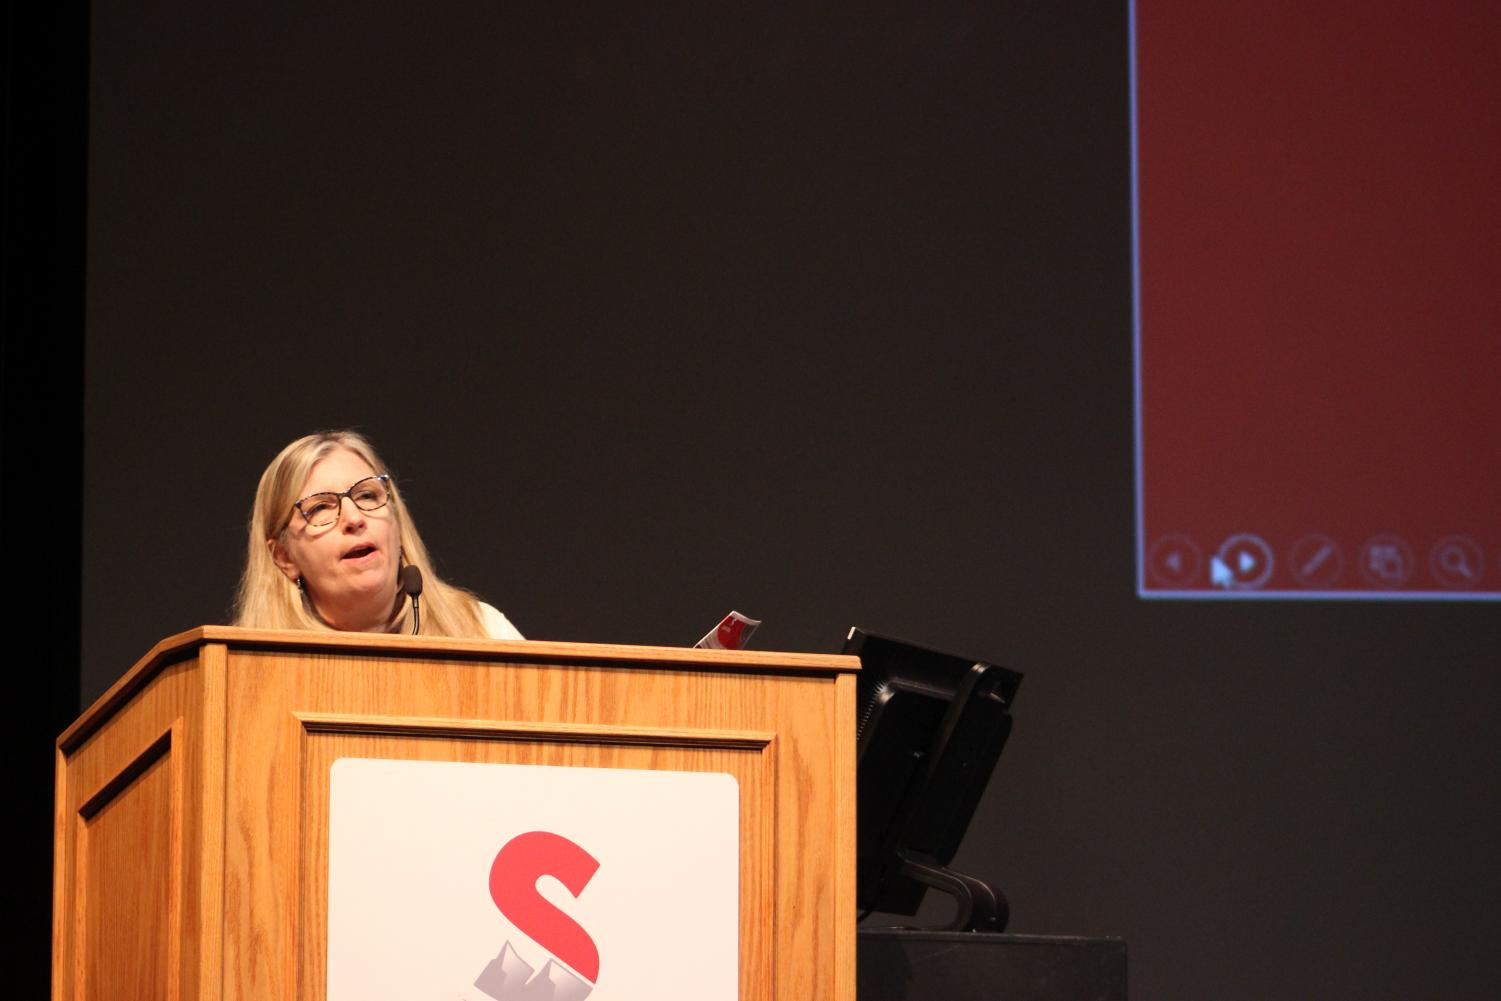 WELCOME TO SIERRA. Rachelle Smith, a faculty member of Sierra College, welcomes high school students to the Sierra campus on CTE day. Topics such as Sierra's Fire Technology, Mechatronis, and Fashion Industry educational pathways were introduced and explained.